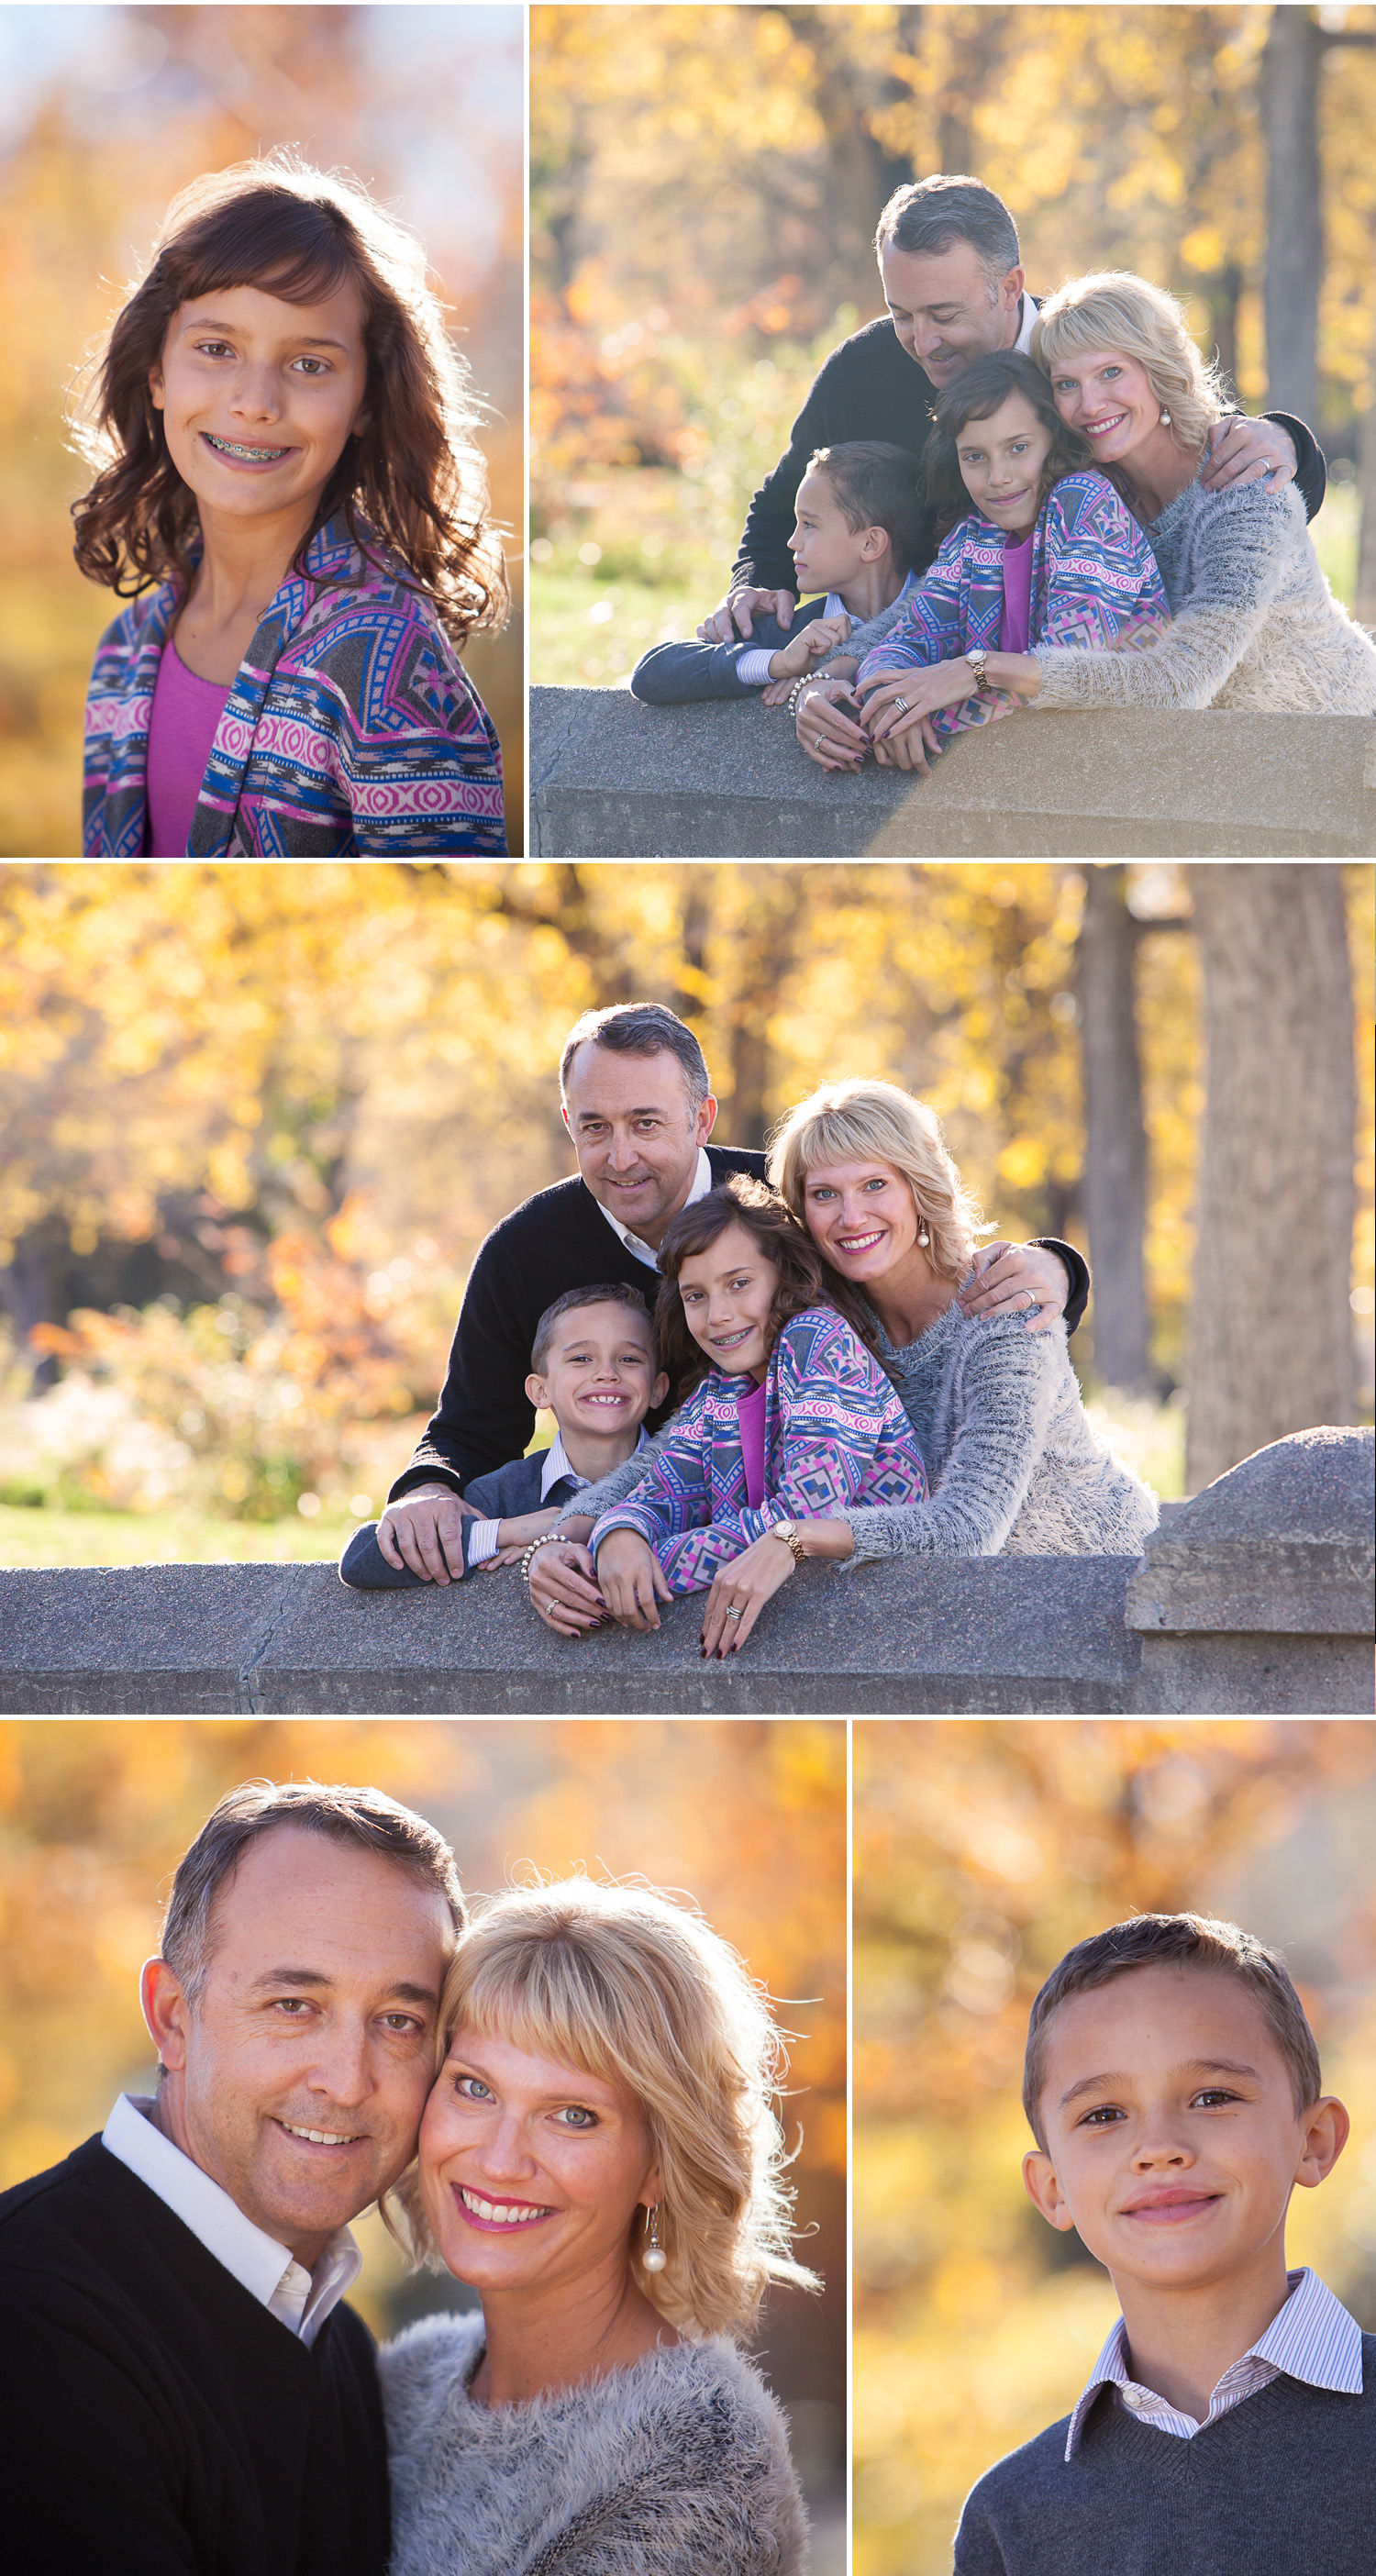 Family Pictures full of joy and love, photographed in fall in Wash Park with Denver photographer Jennifer Koskinen | Merritt Portrait Studio